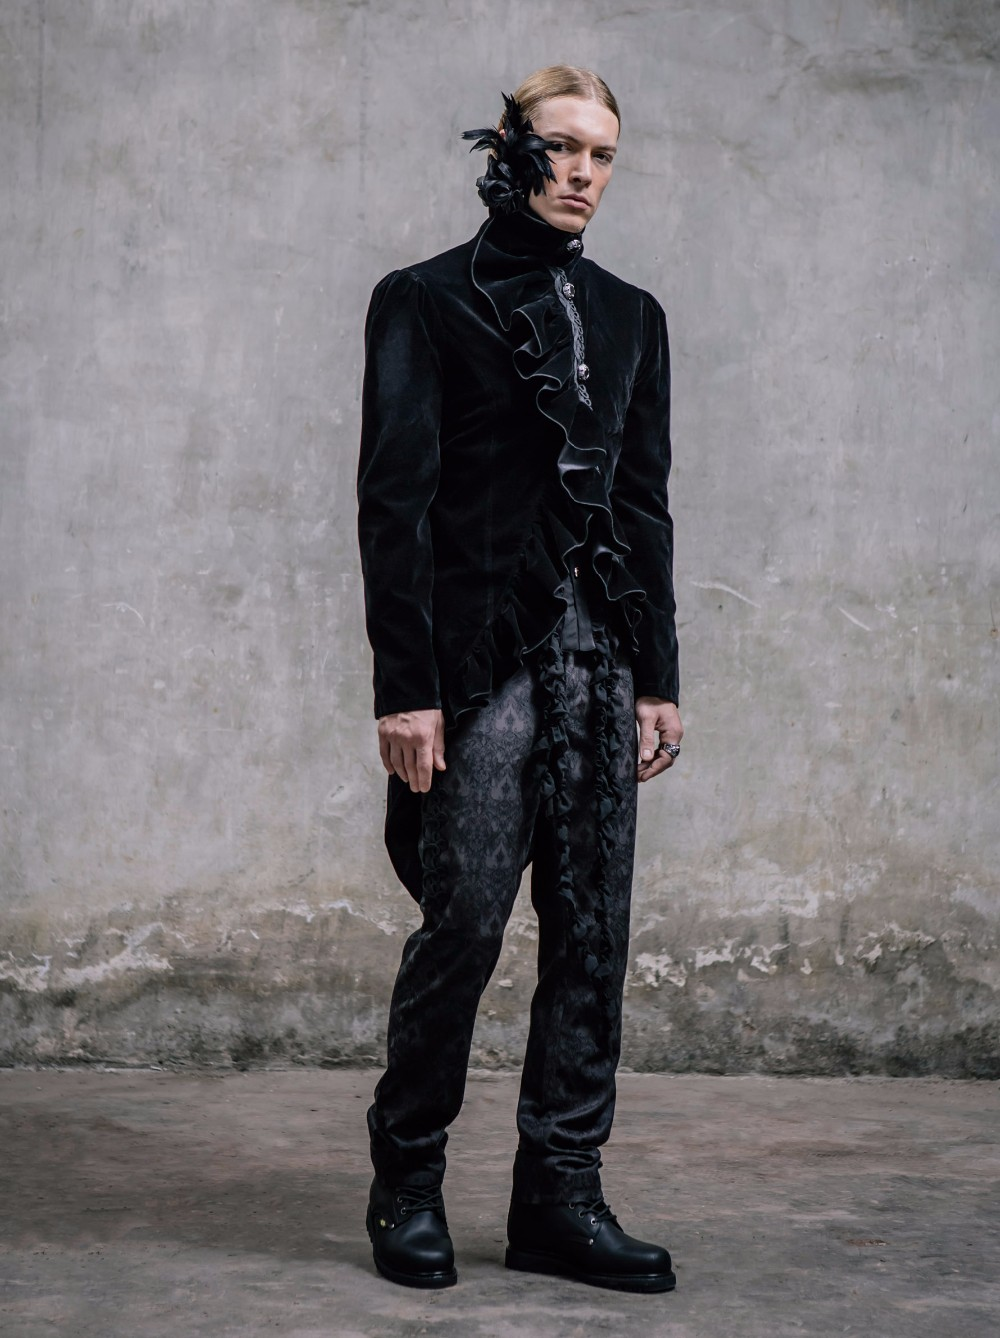 Black Velvet  Male Aristocrat Jackets Steampunk